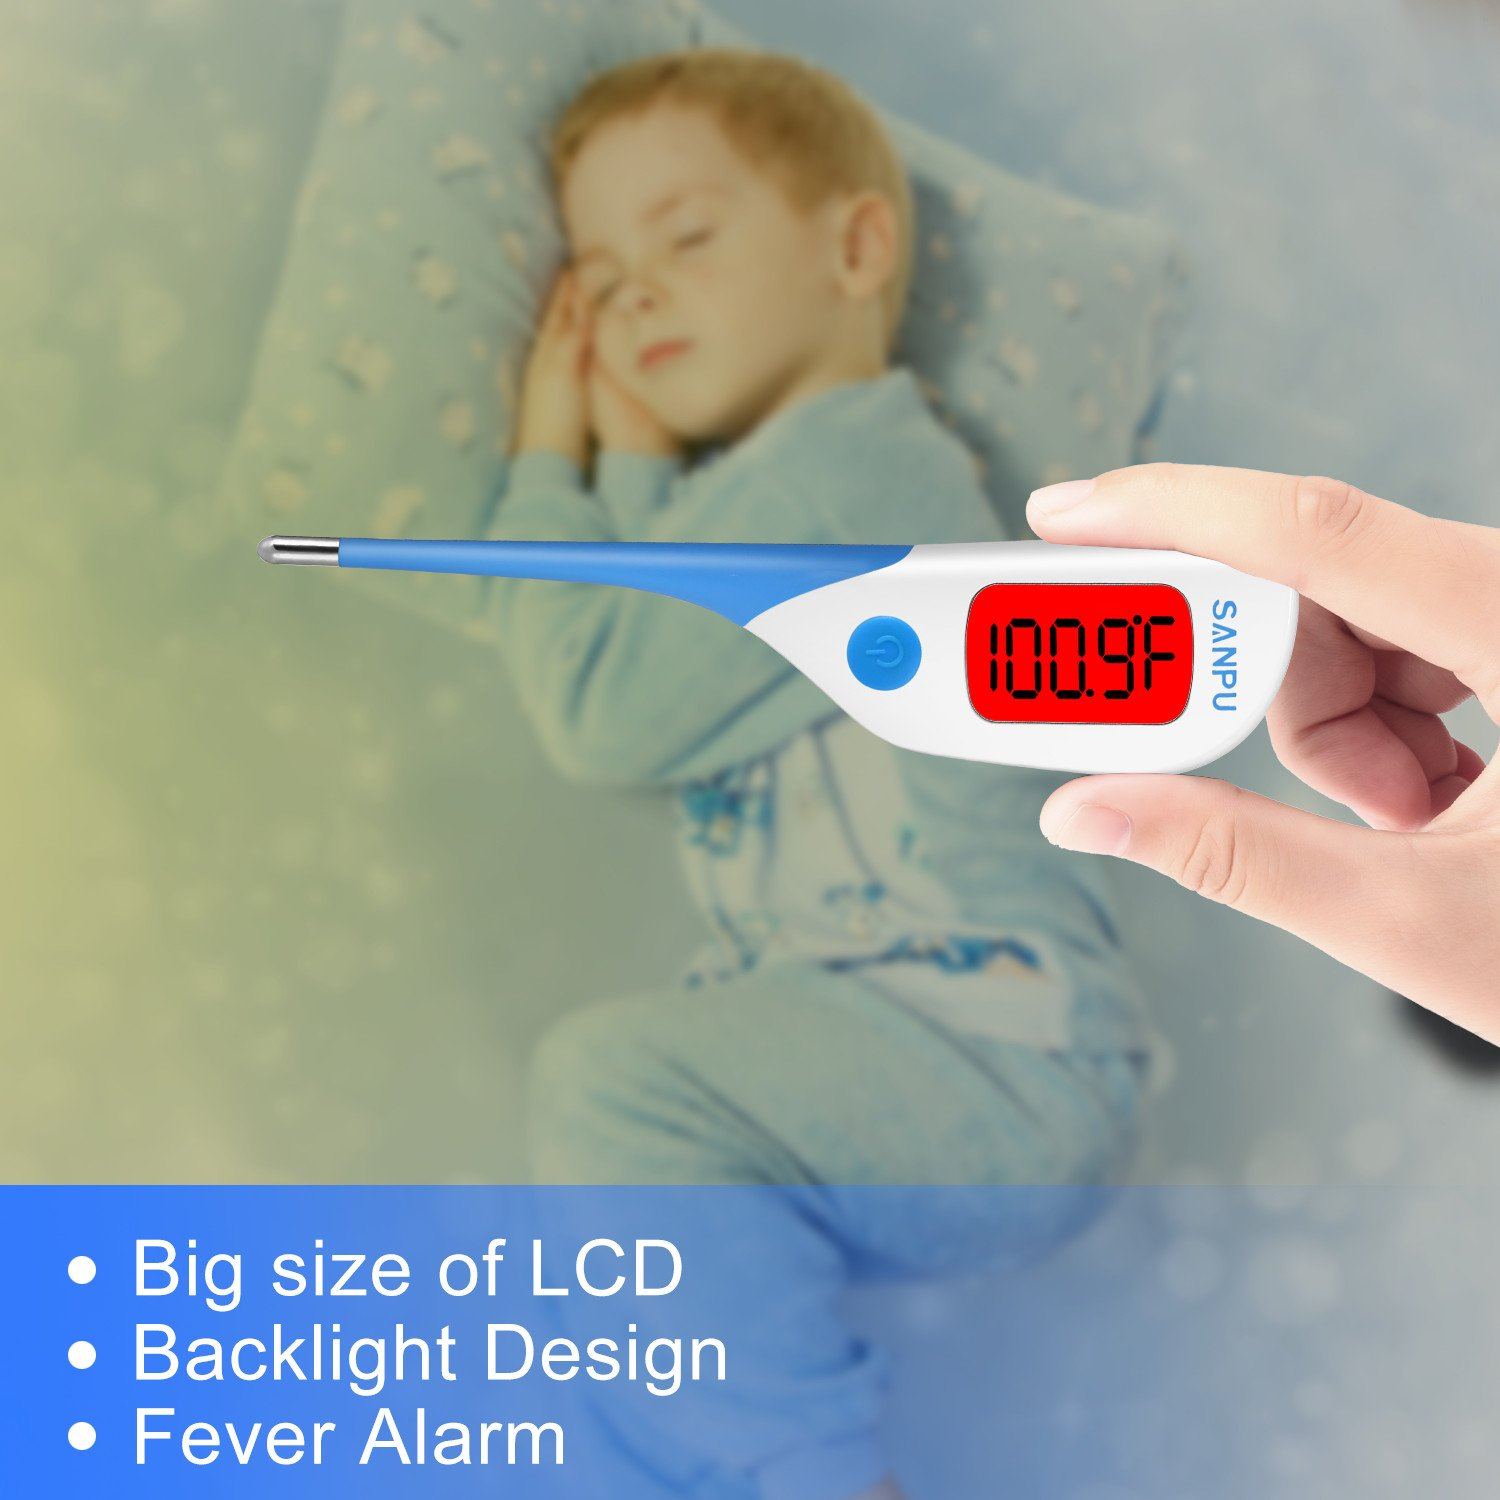 Amazon.com: Clinical Thermometer Digital Medical Oral Rectal and Armpit Thermometer for Baby and Adult, Fast 8 Seconds Reading,Waterproof with Fever Alarm ...